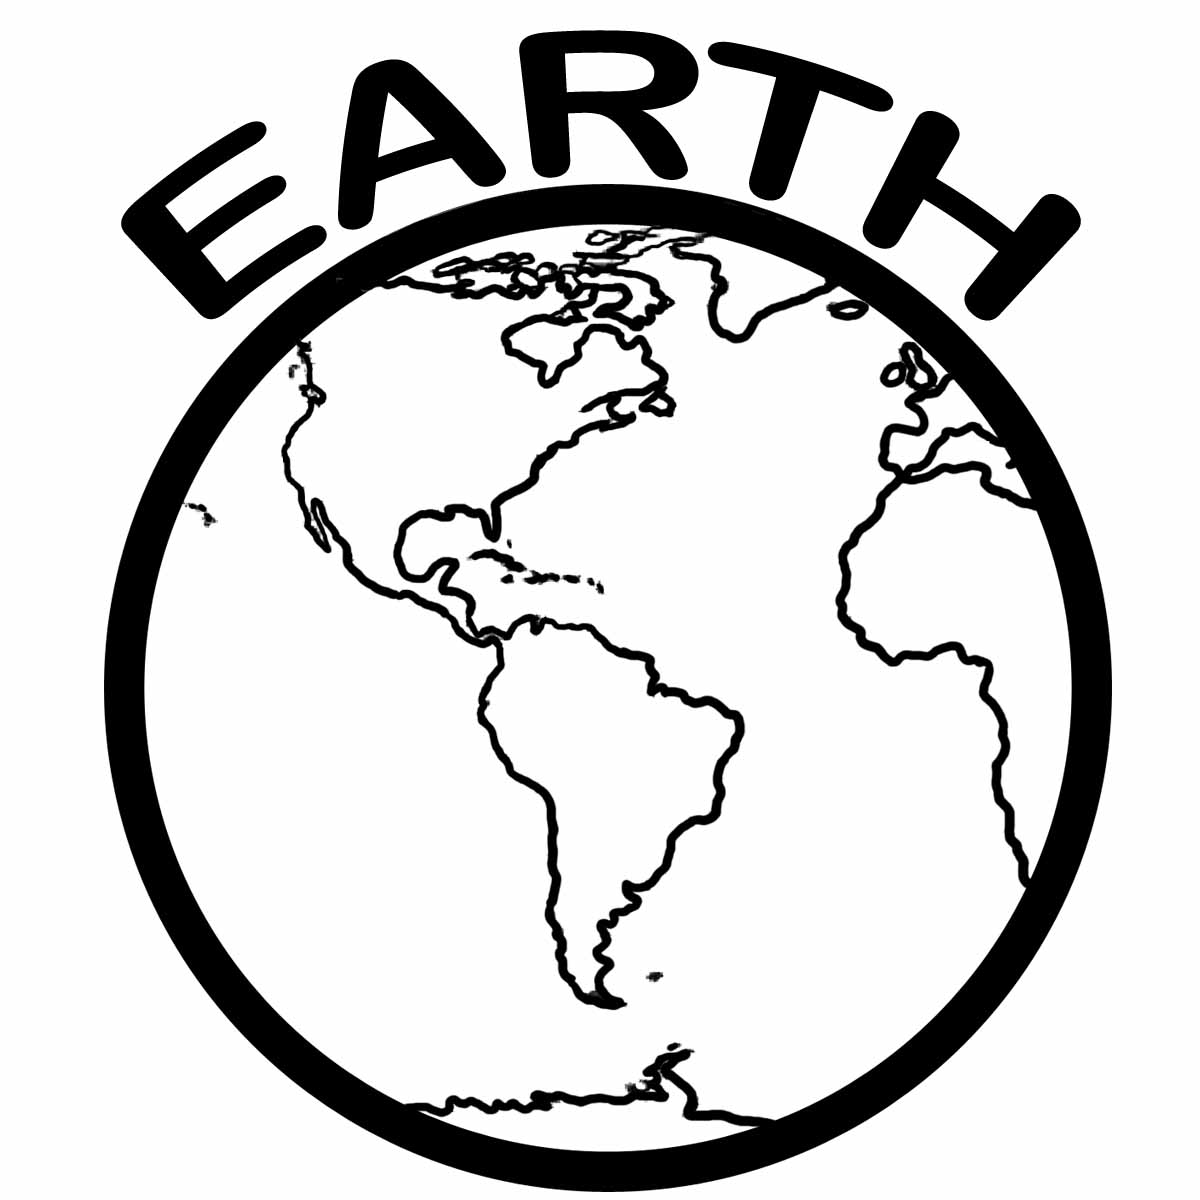 Earth clipart template. Black and white drawing